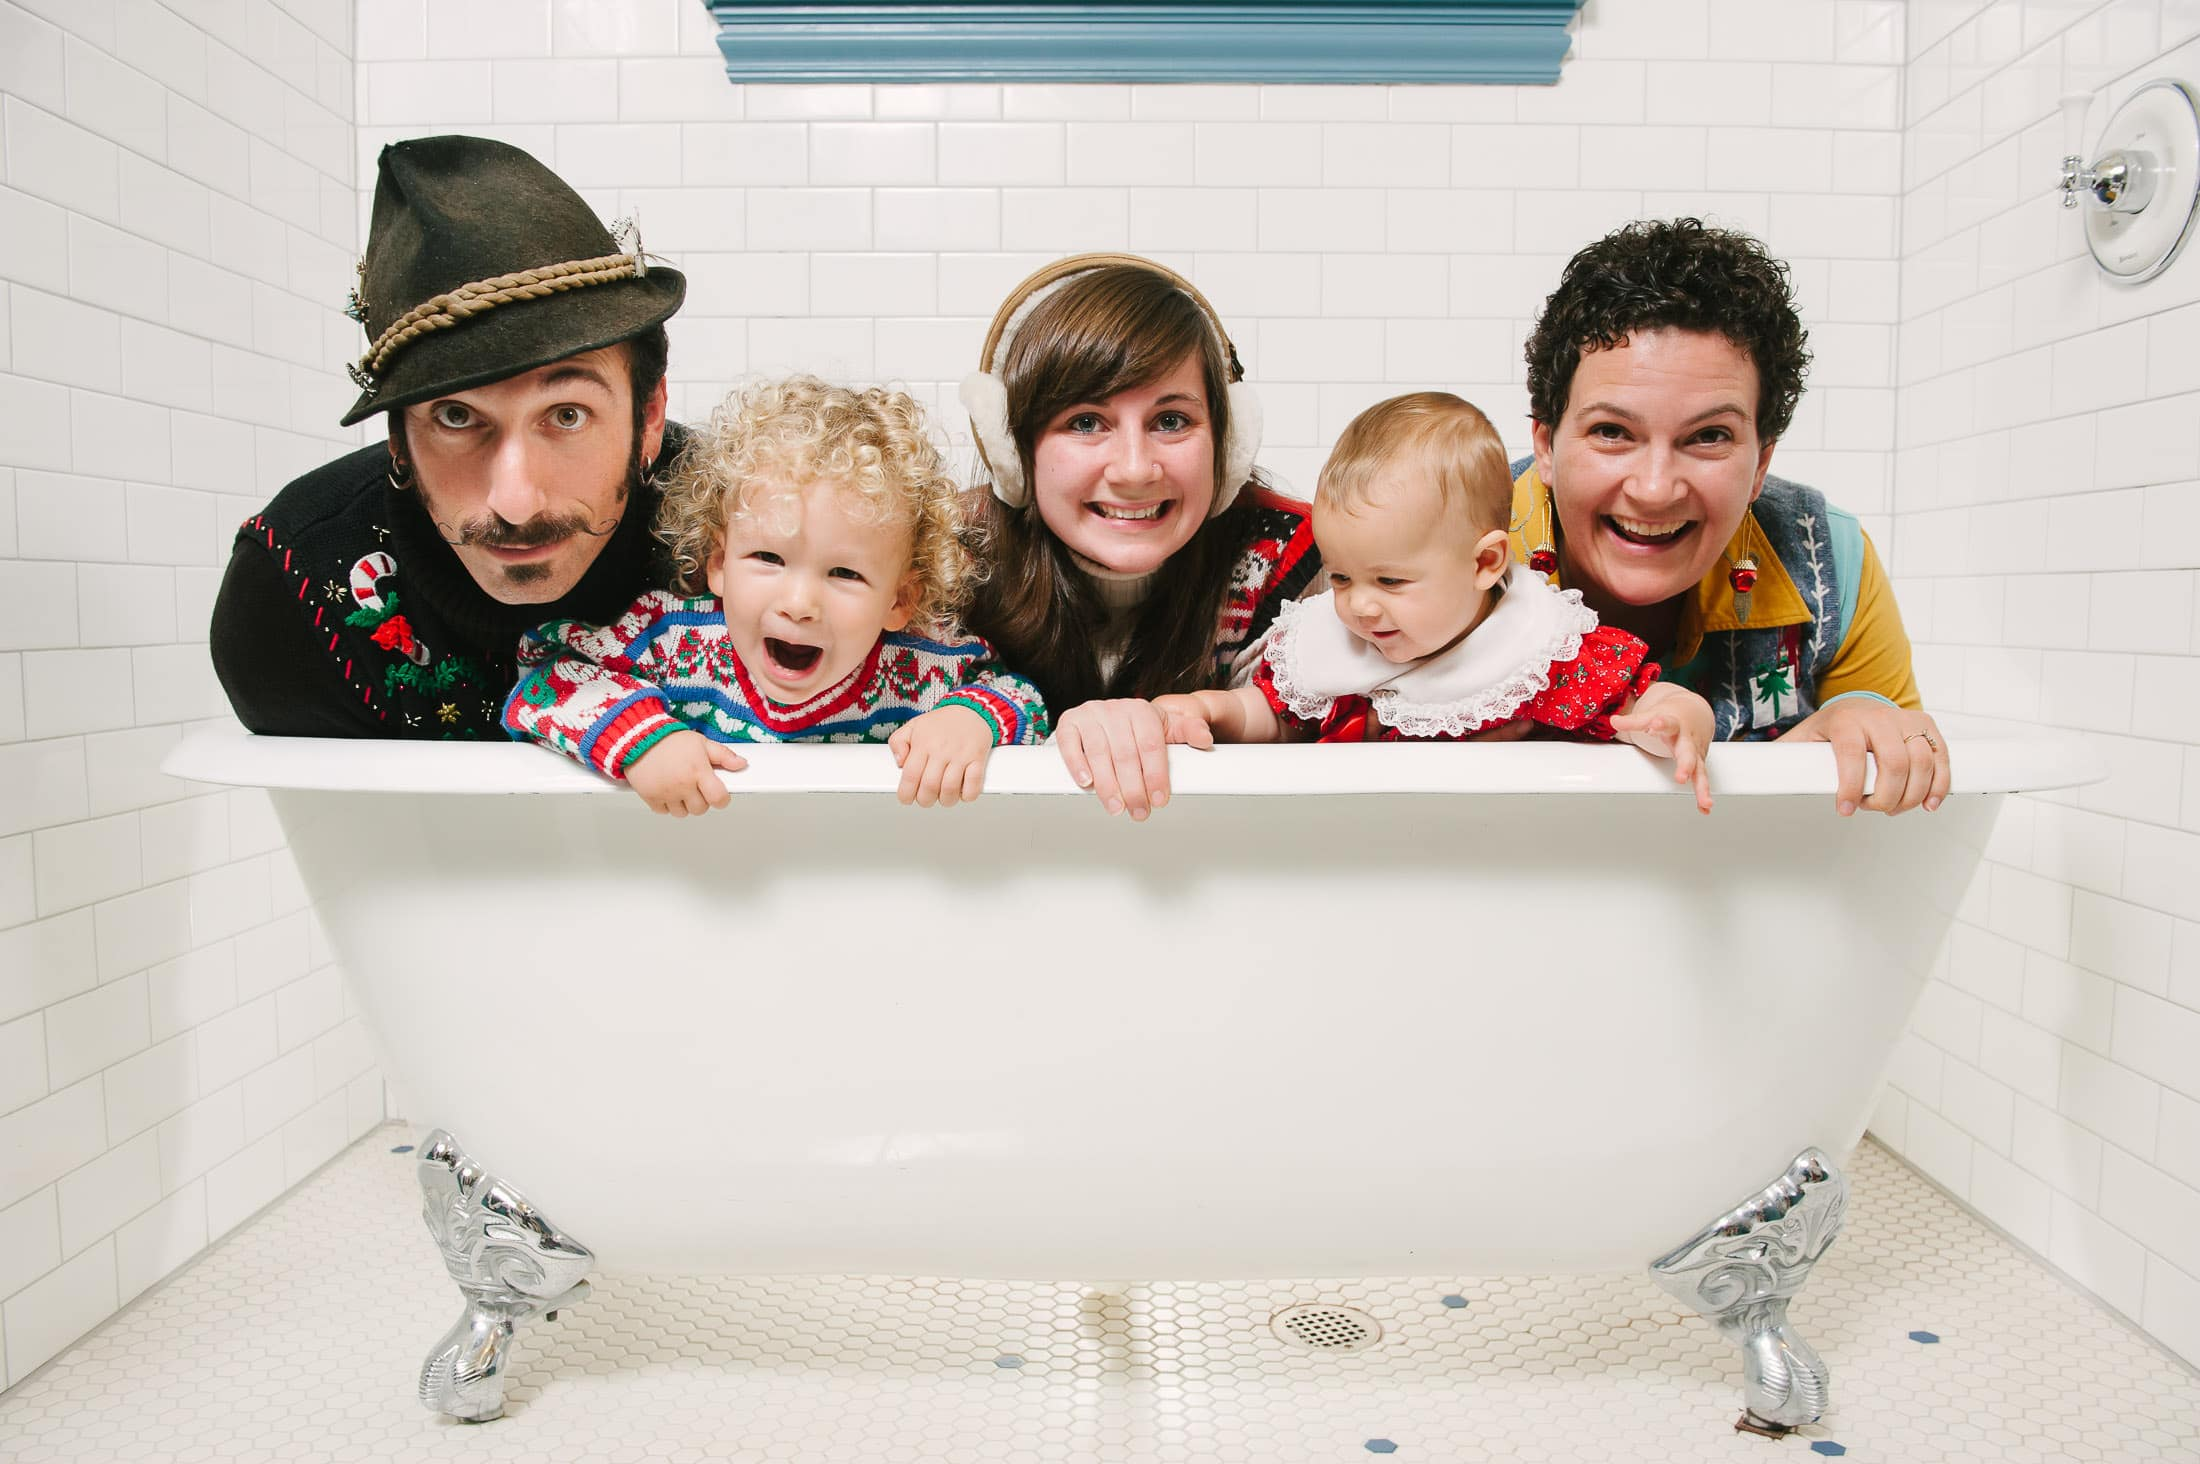 Oakland Photographer and Family in Bathtub for Holiday Card